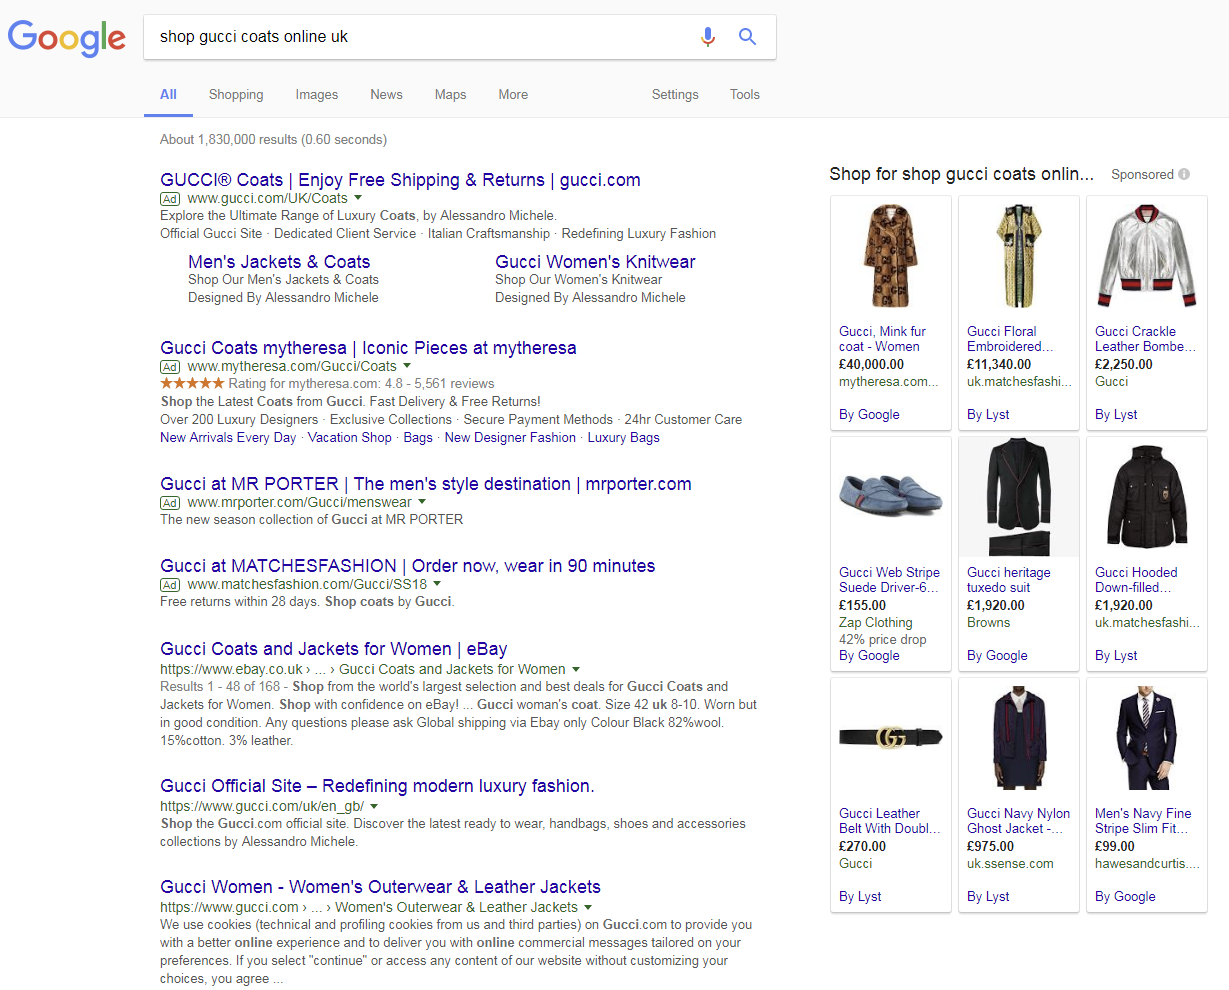 12f2f7a61178eb If we look closer at Lyst, we can see they dominate for the longer tail  search term 'shop gucci coats online uk', with over half of the shopping  ads on the ...